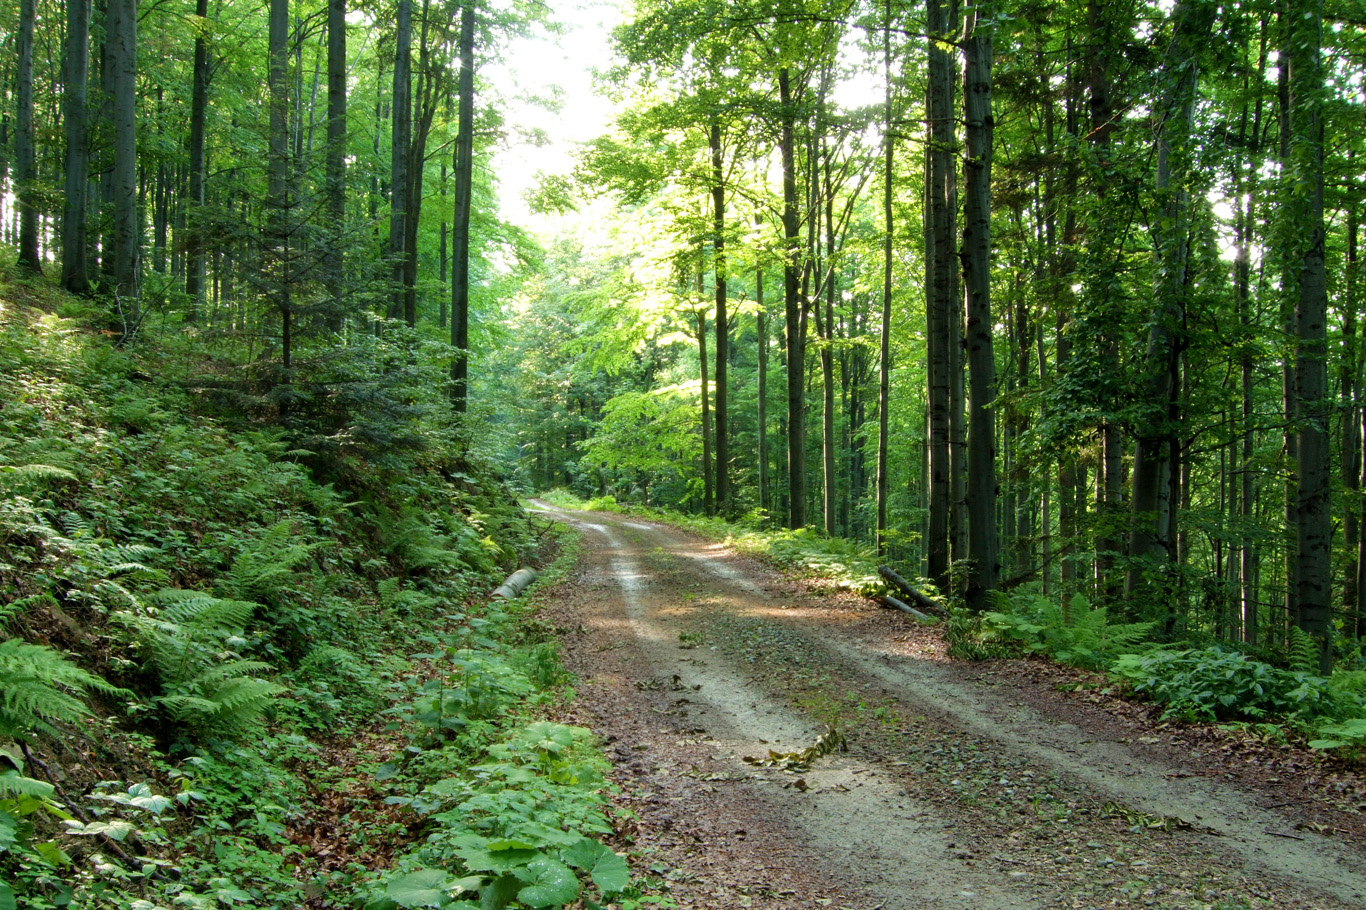 Serbia is full of unspoiled forests